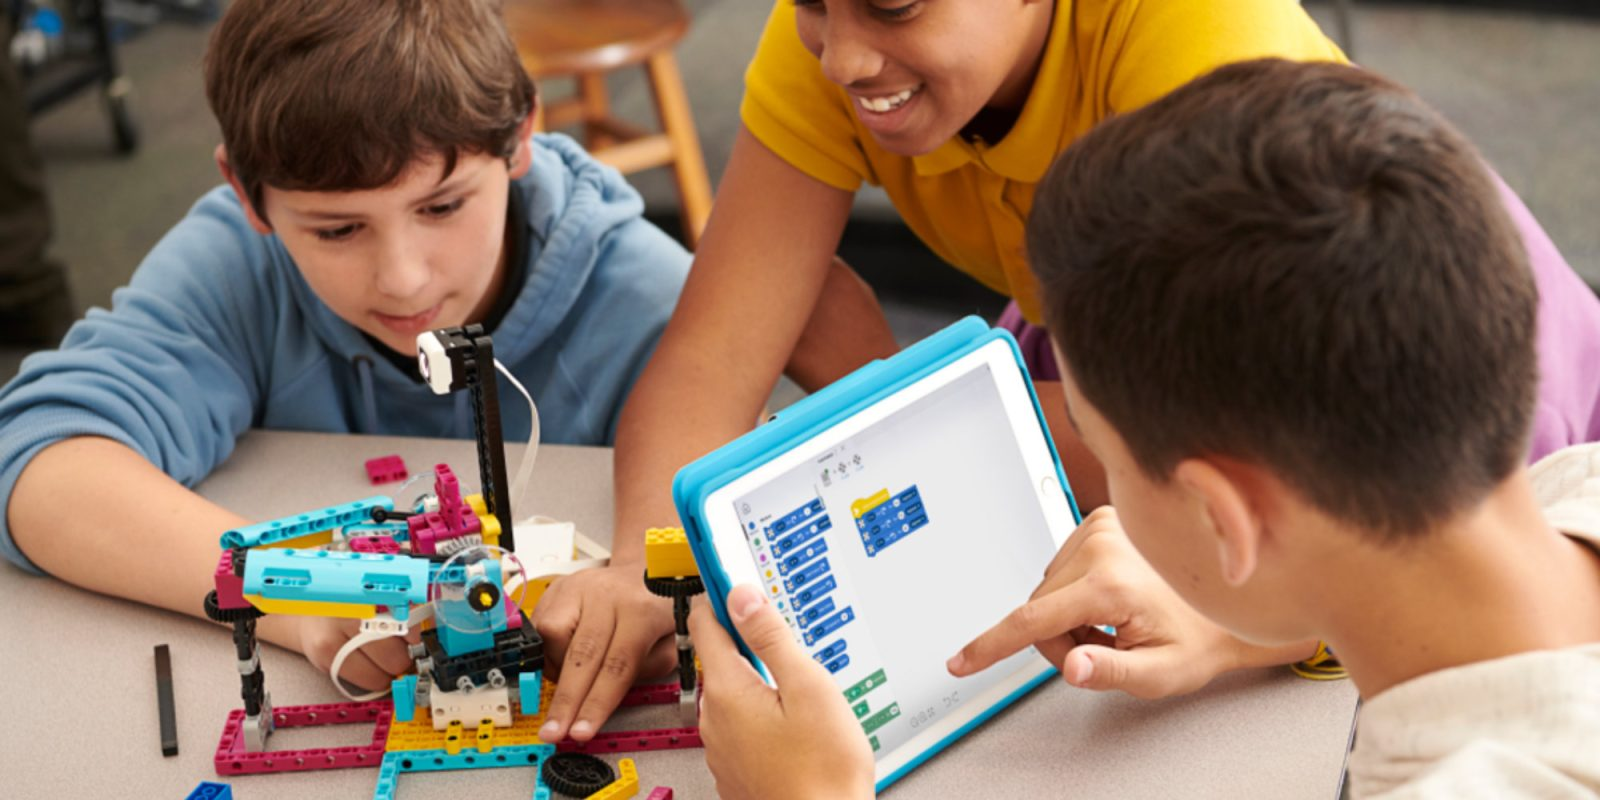 LEGO Spike Prime is the company's latest STEAM offering, teaches builders to code in Scratch